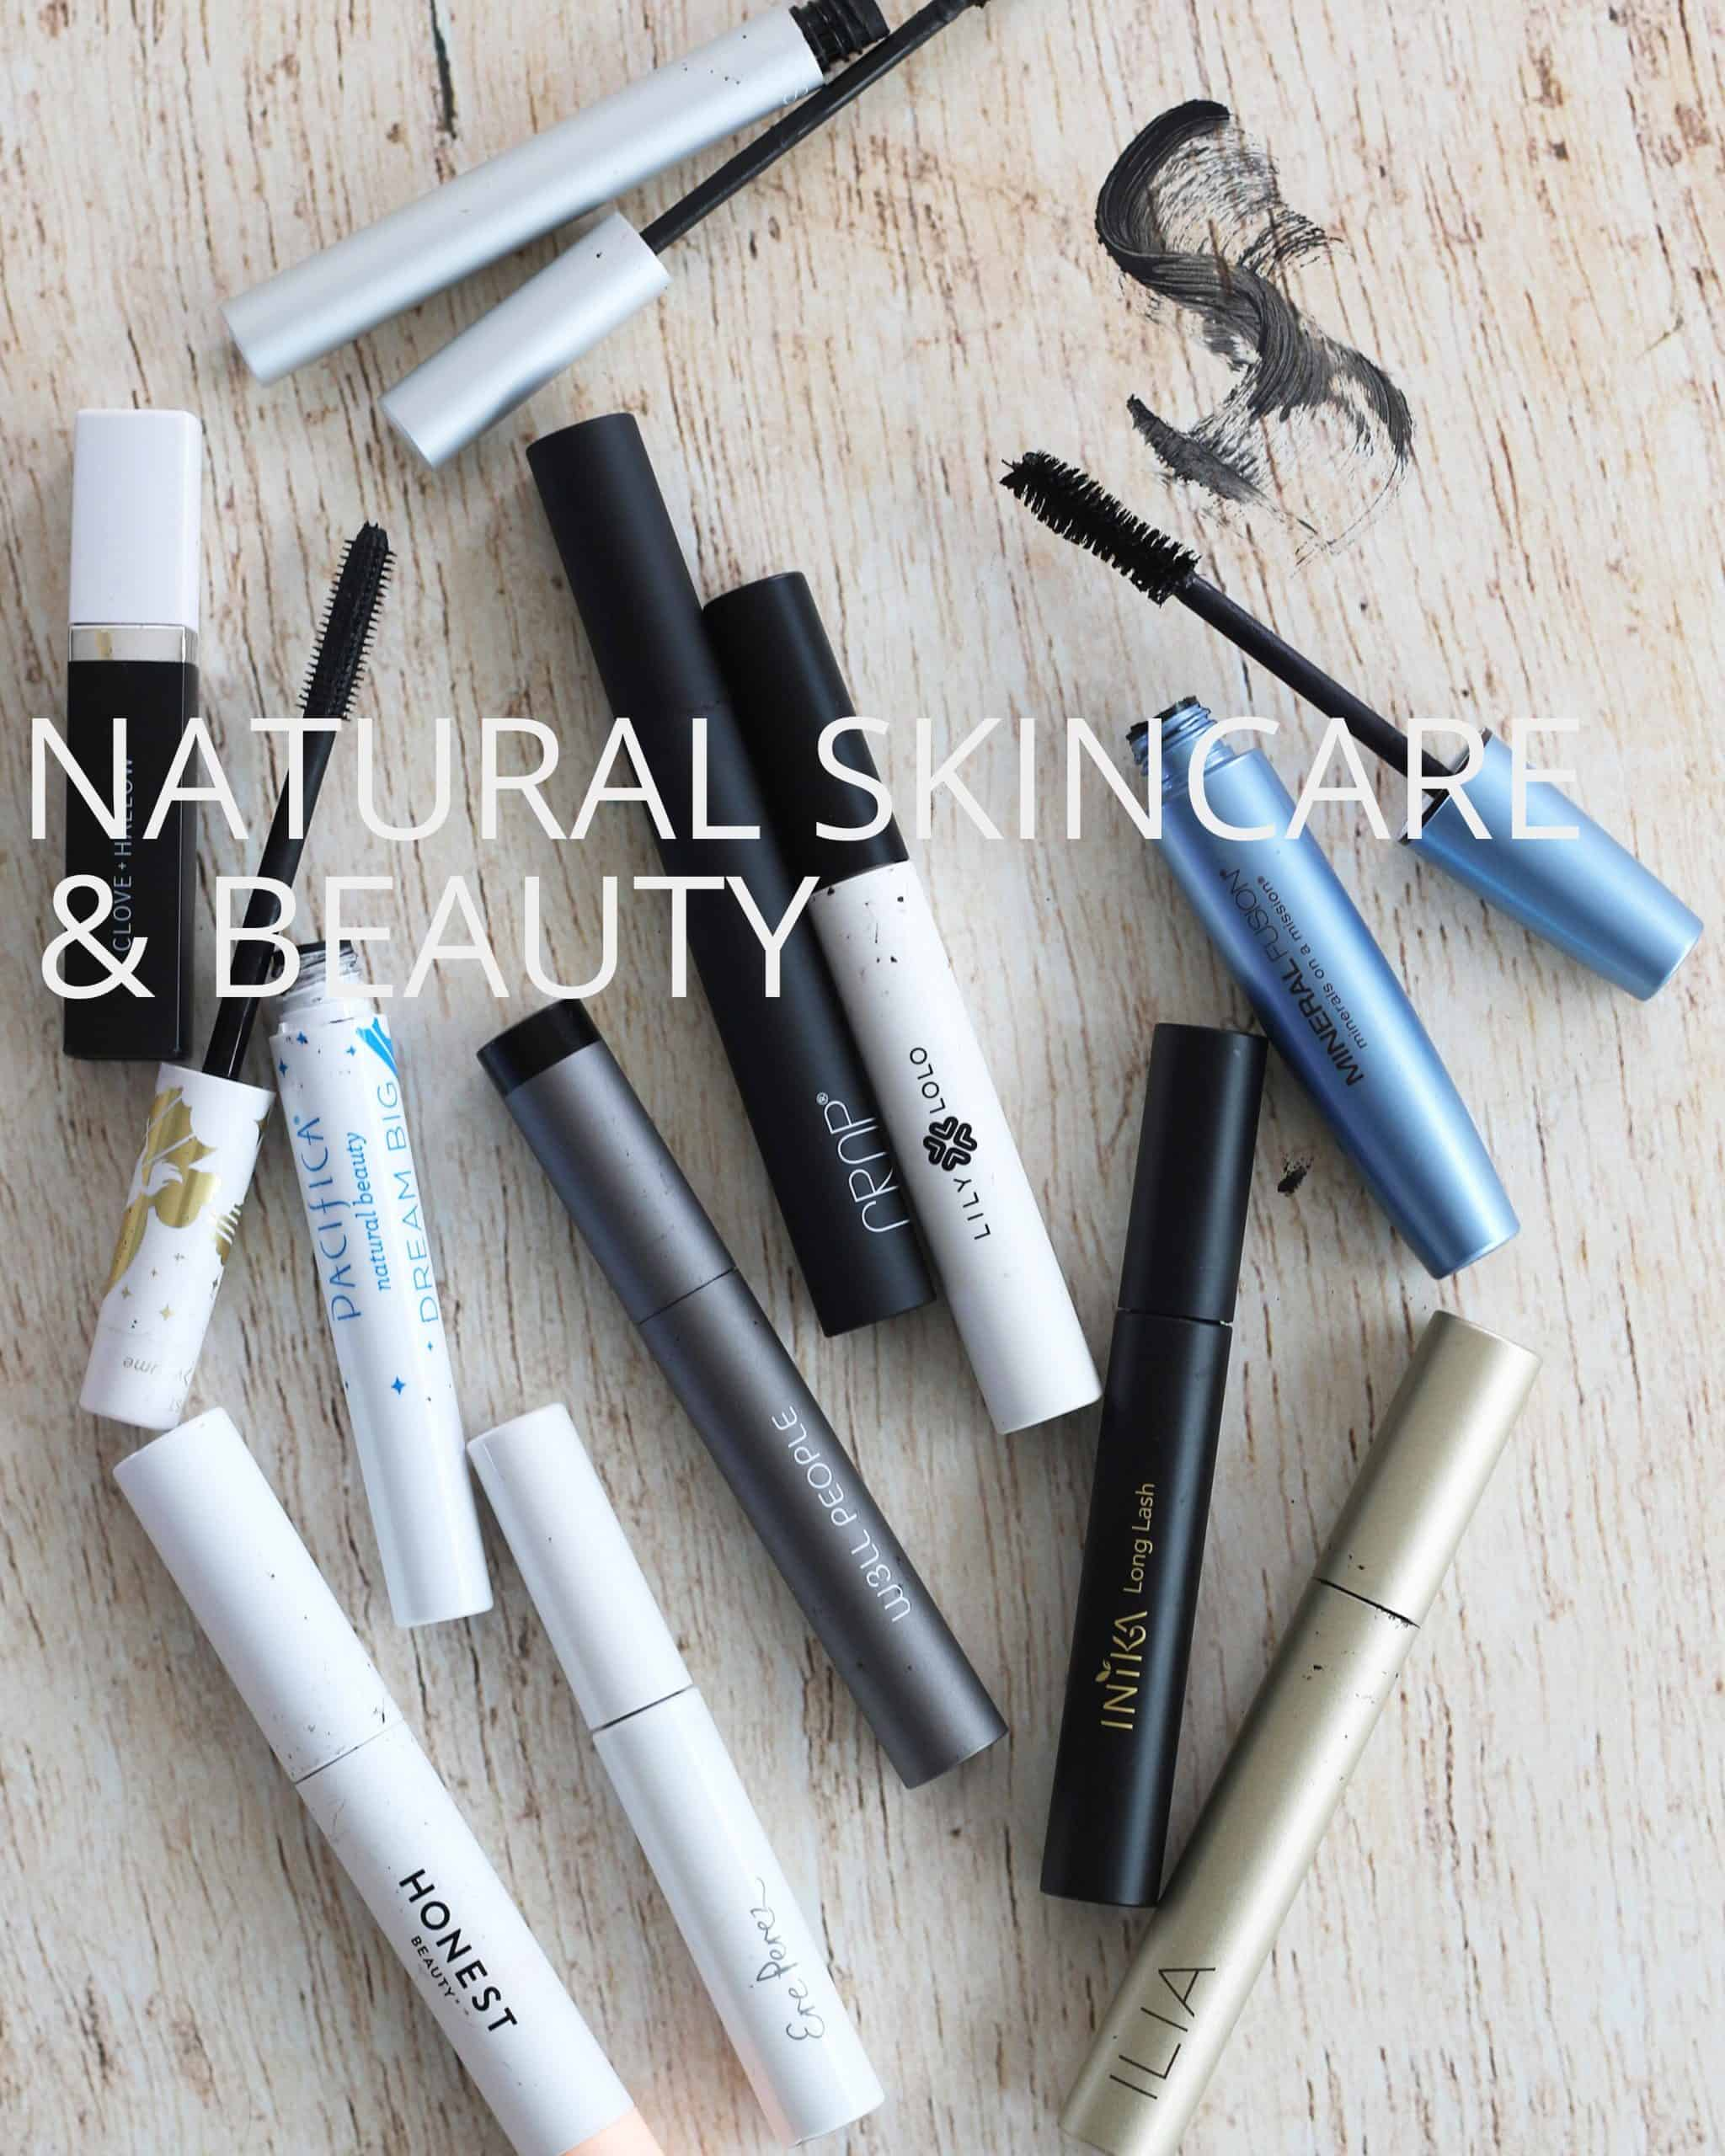 Natural skincare and beauty with natural mascara